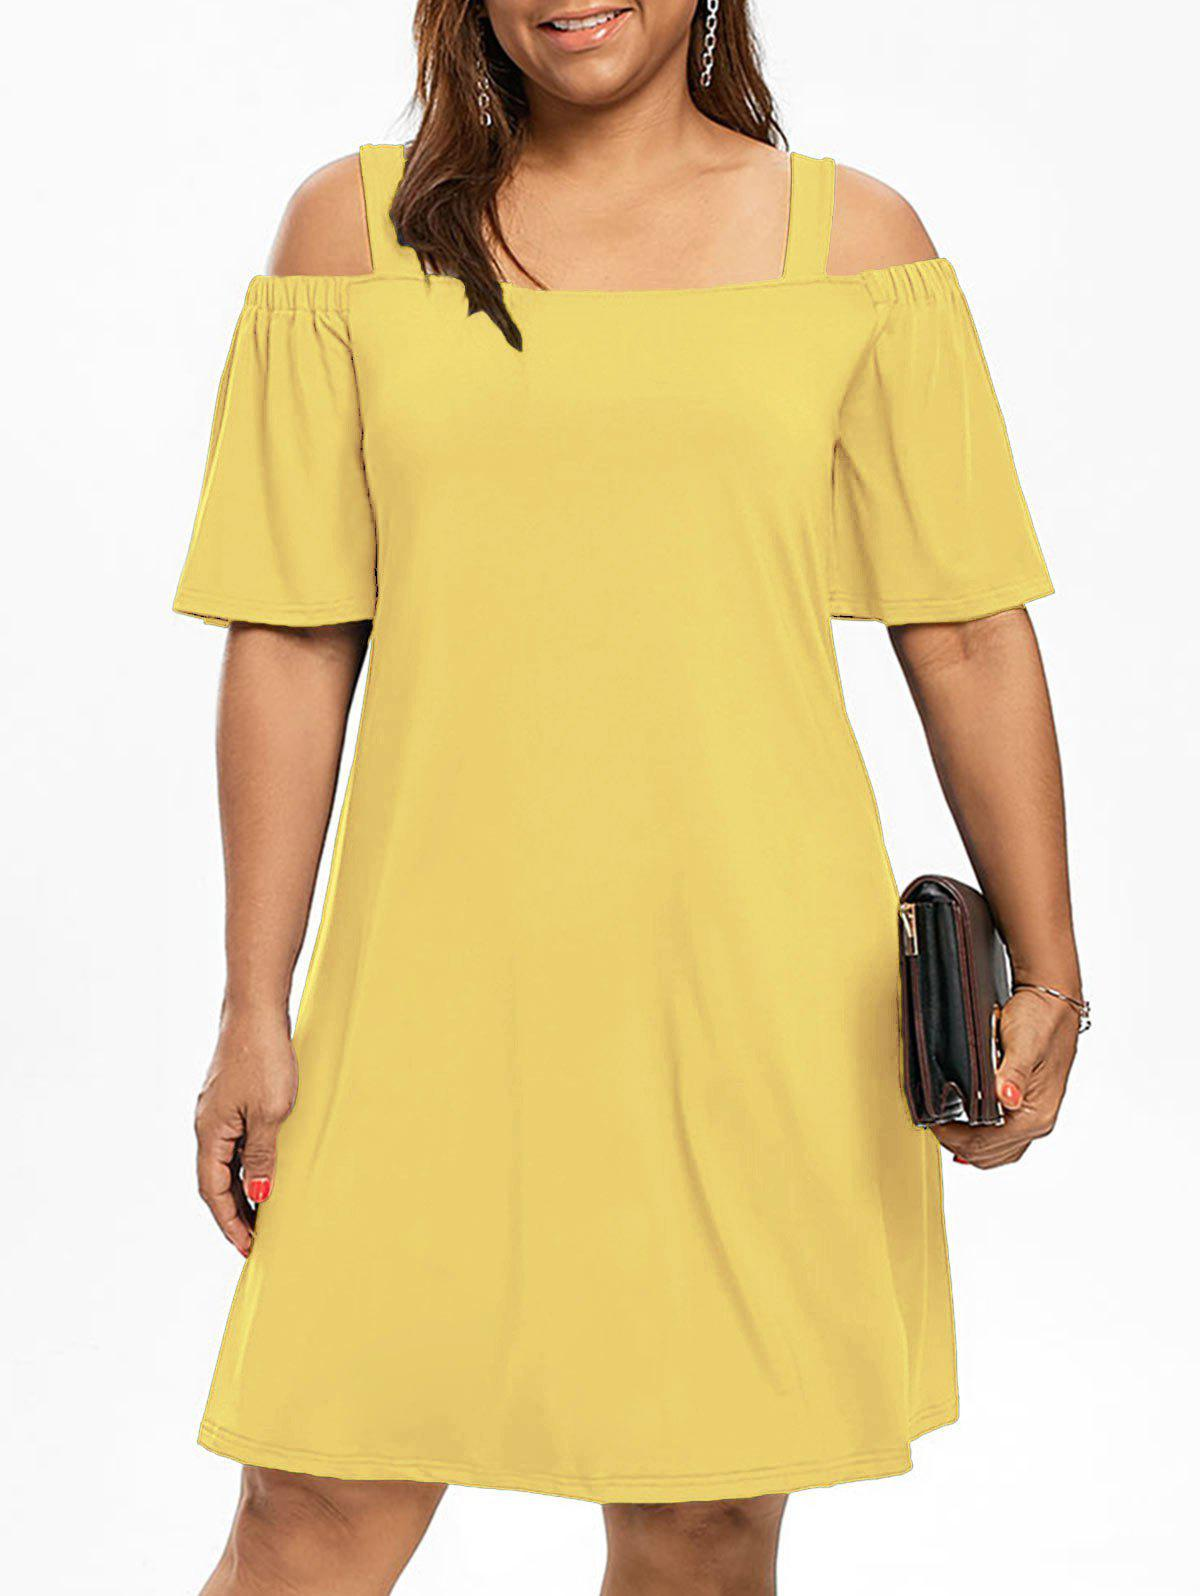 28% OFF] Cold Shoulder Half Sleeve Plus Size Dress | Rosegal